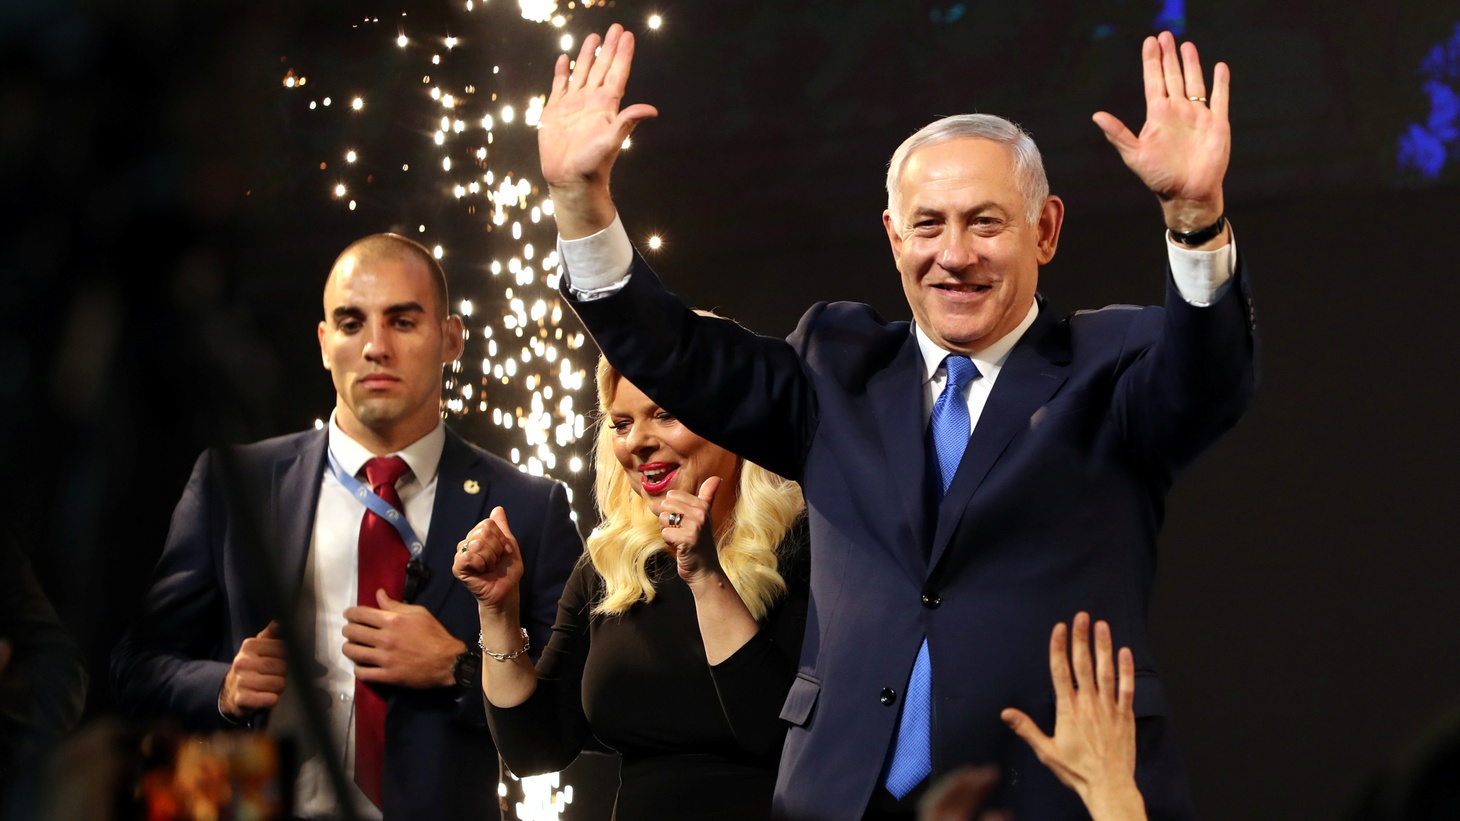 Israeli Prime Minister Benjamin Netanyahu and his wife Sara react as they stand on stage following the announcement of exit polls in Israel's parliamentary election at the party headquarters in Tel Aviv, Israel April 10, 2019.